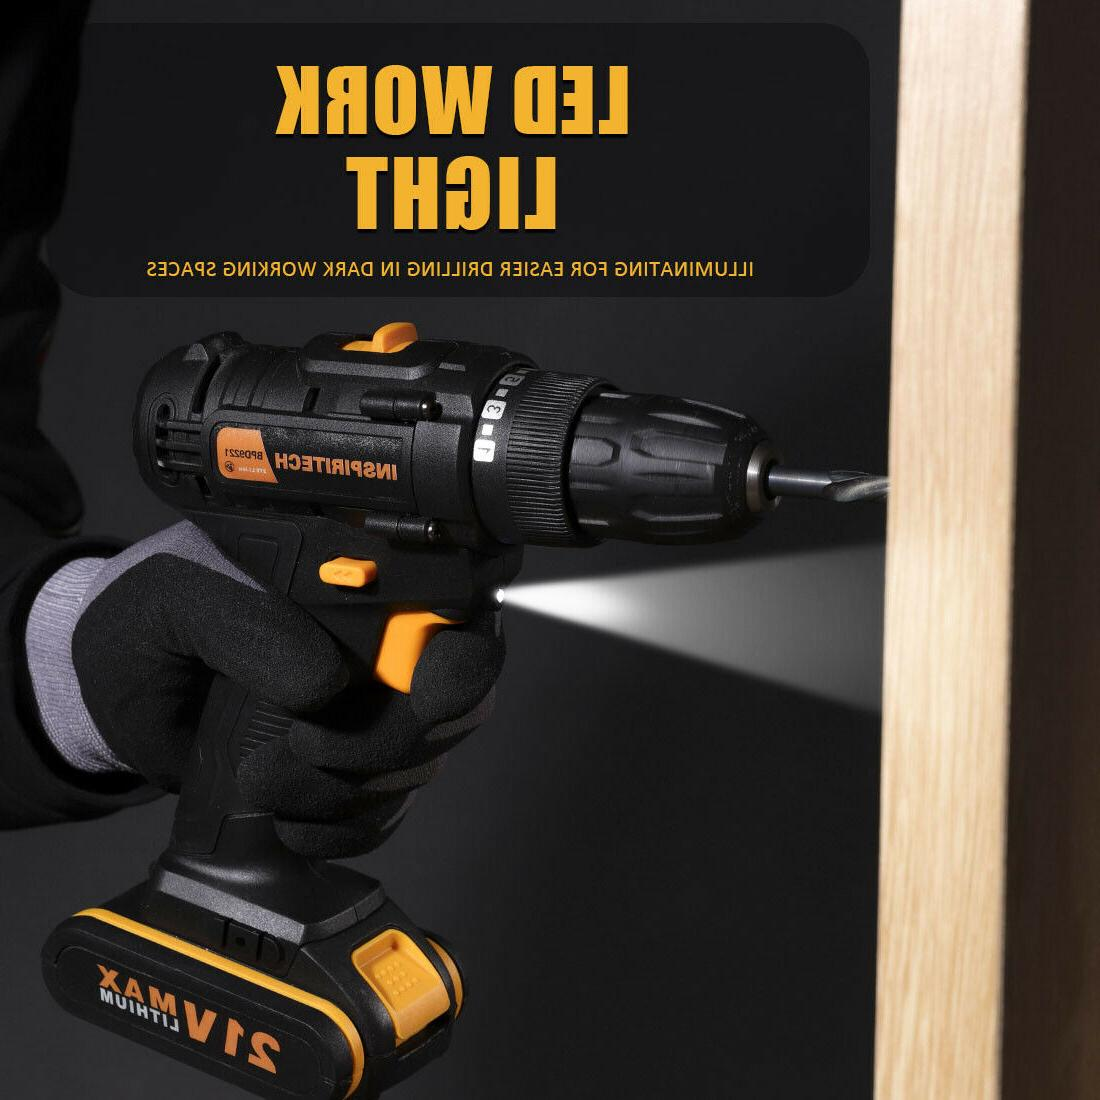 21 Speed Cordless with 2